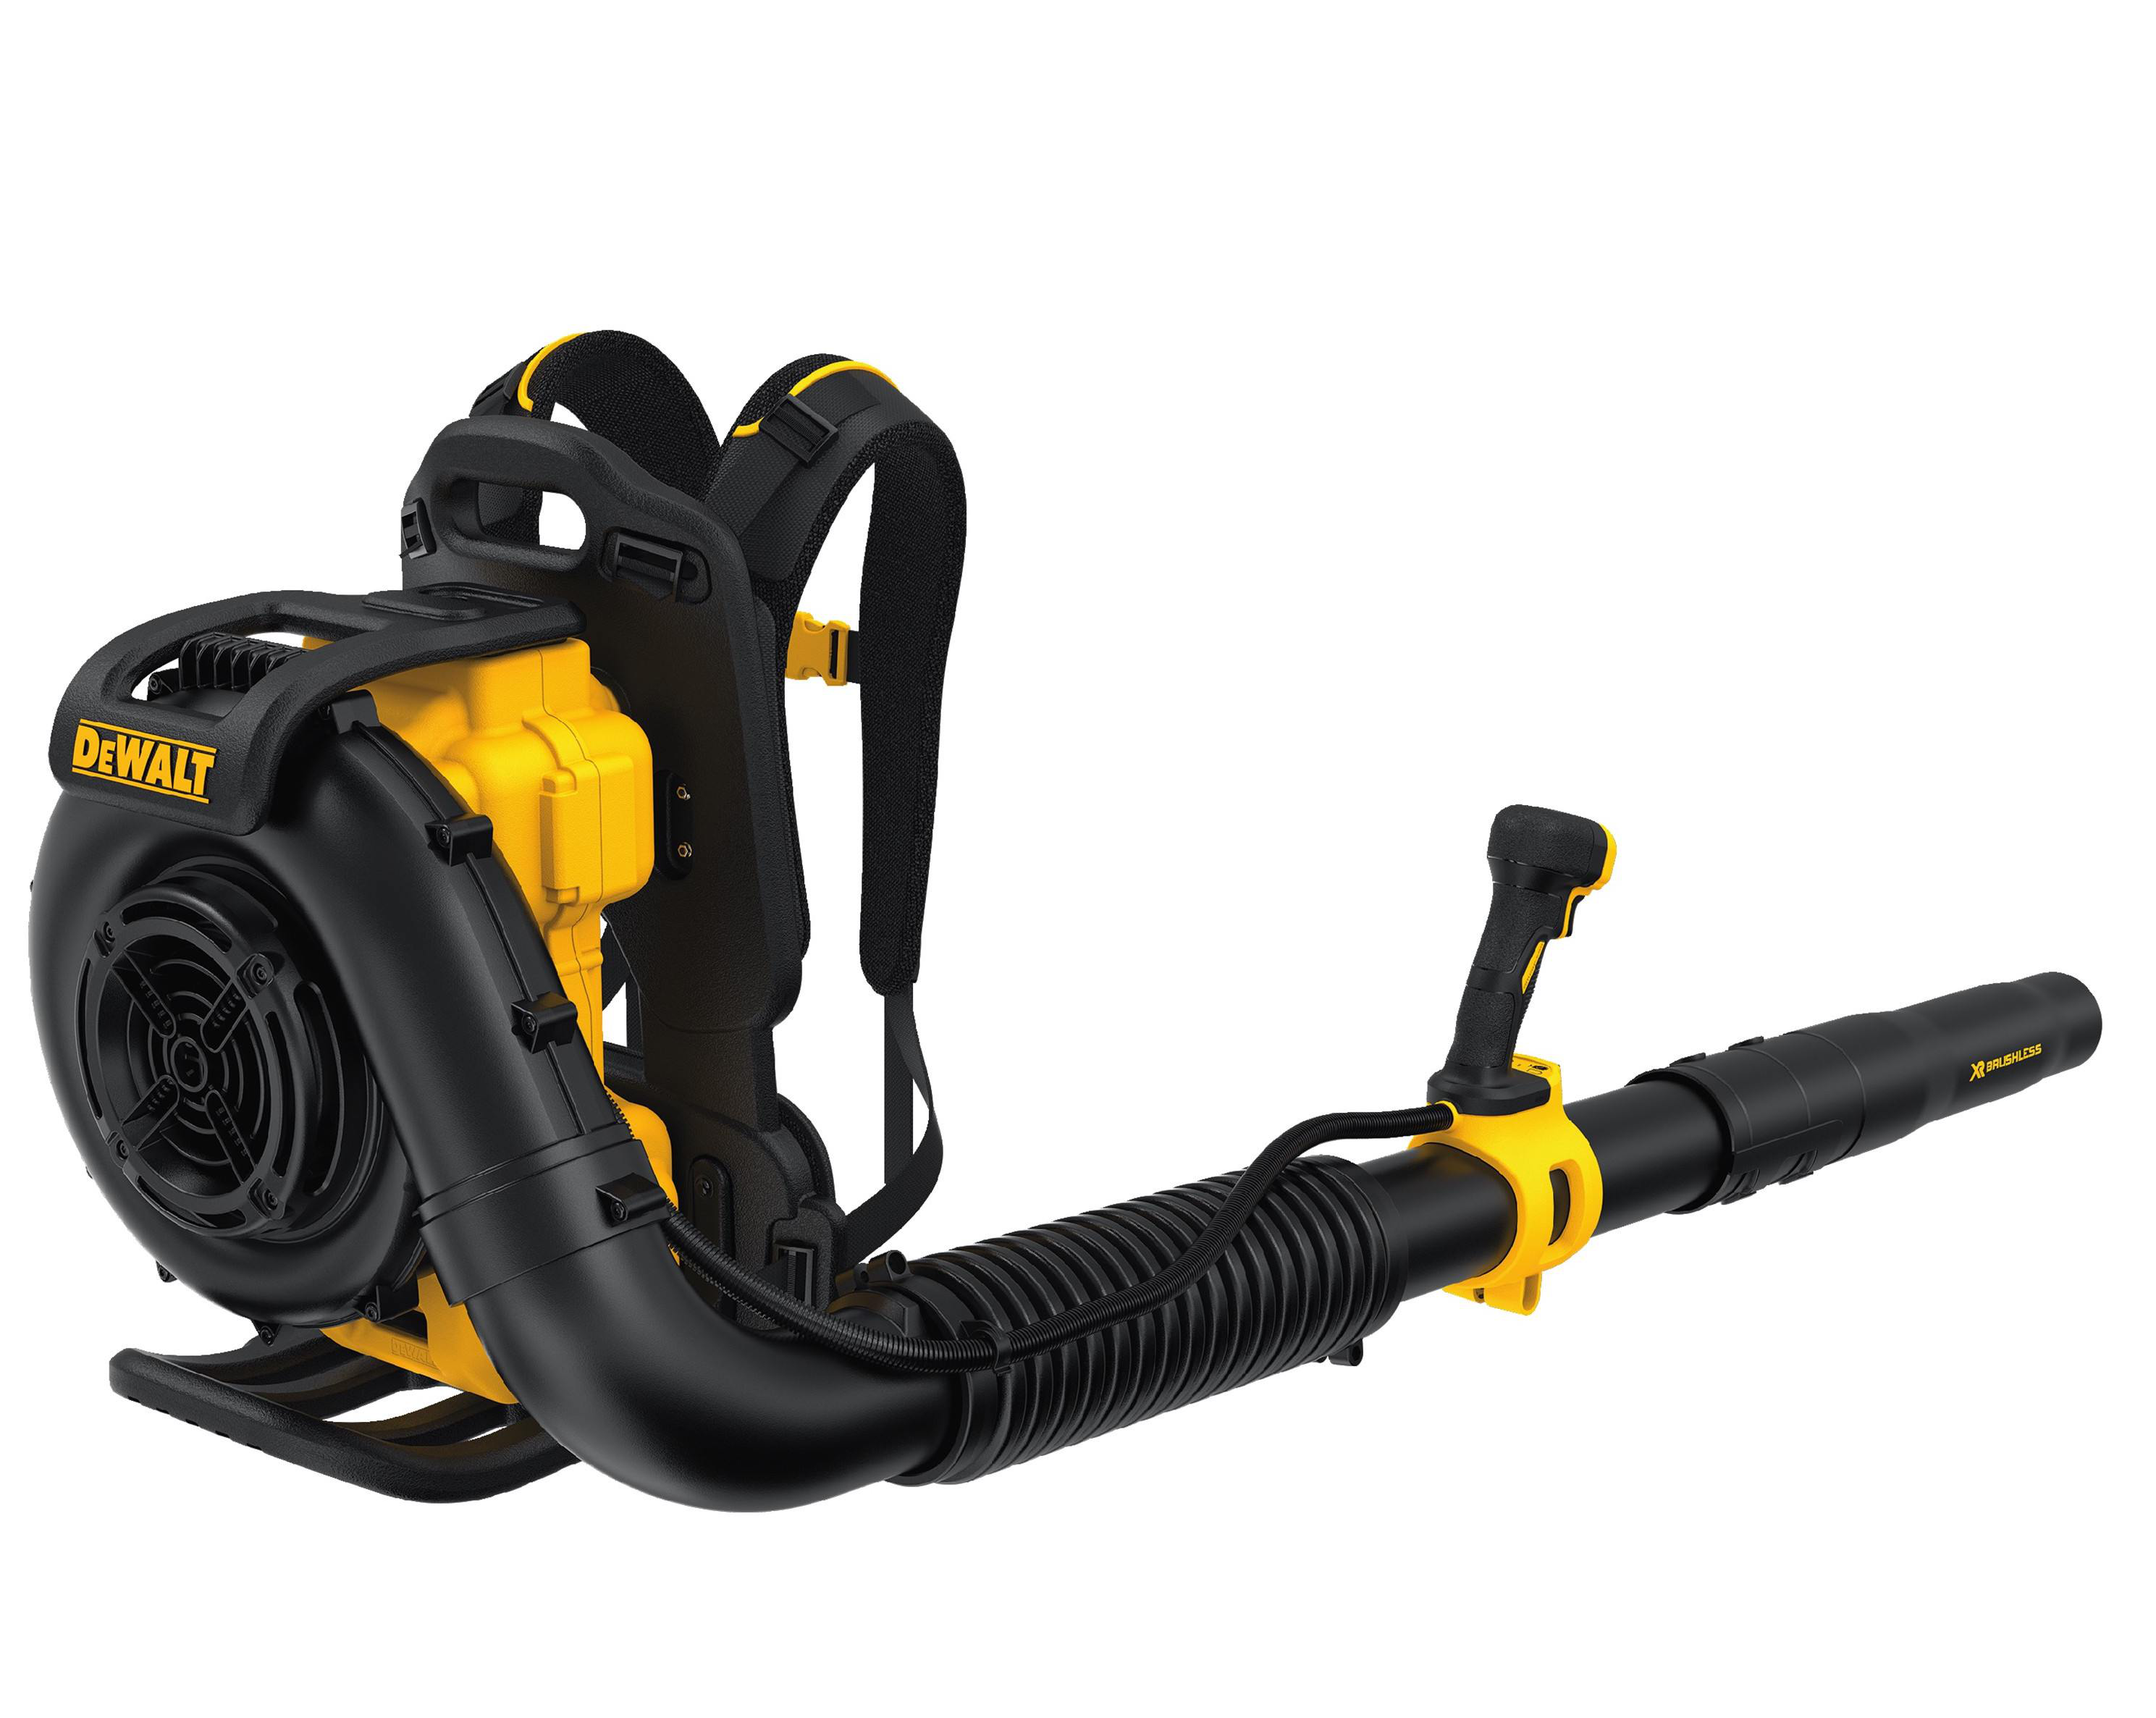 Dewalt Battery Powered Blower Capitalizes On Leaf Blower Ban